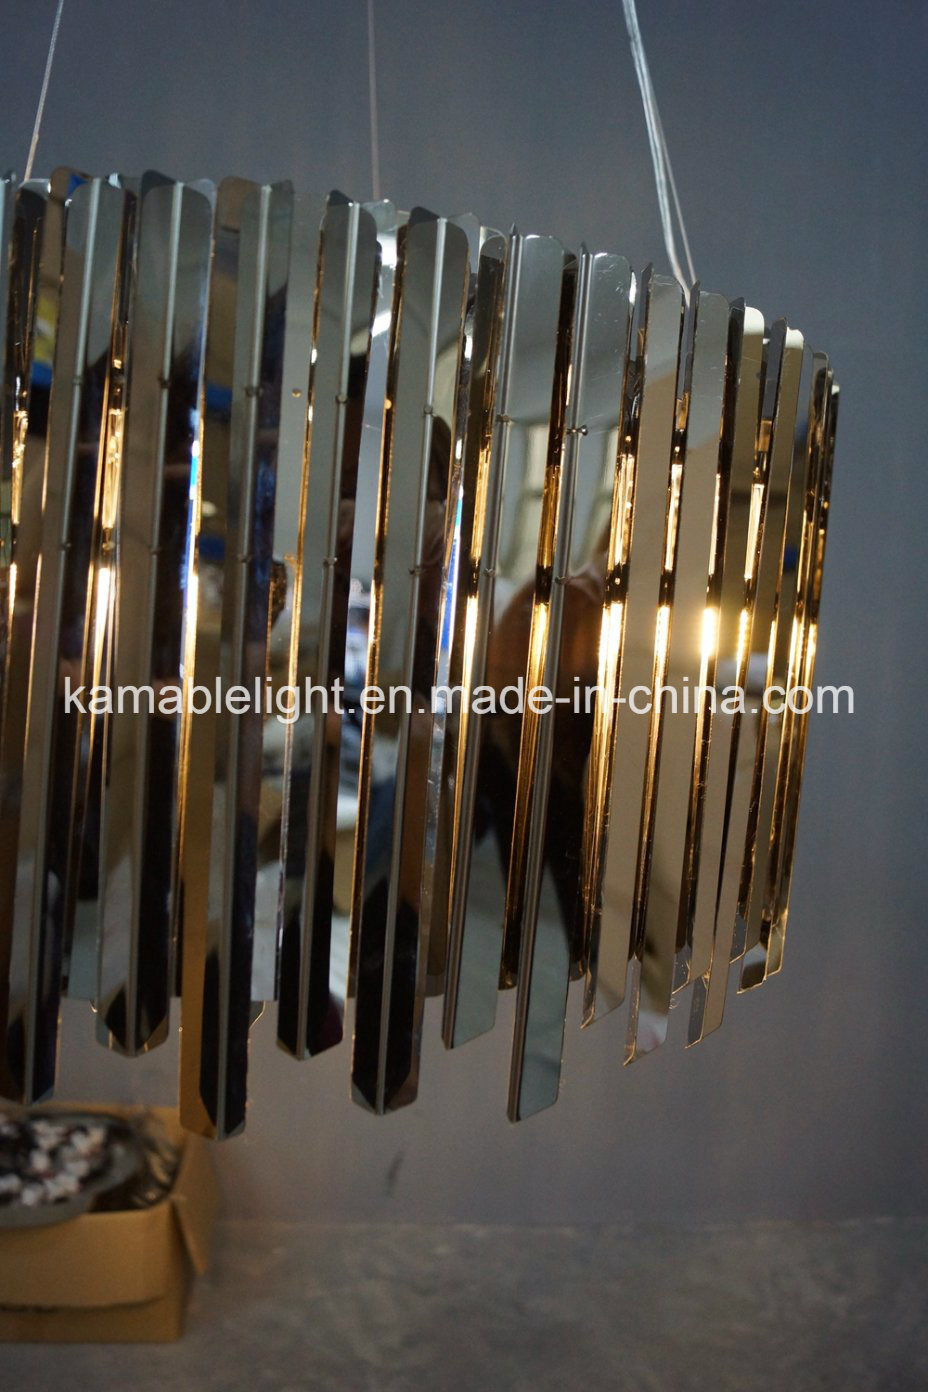 Fancy Restaurant Lighting Pendant Light (KA5222-100+60)